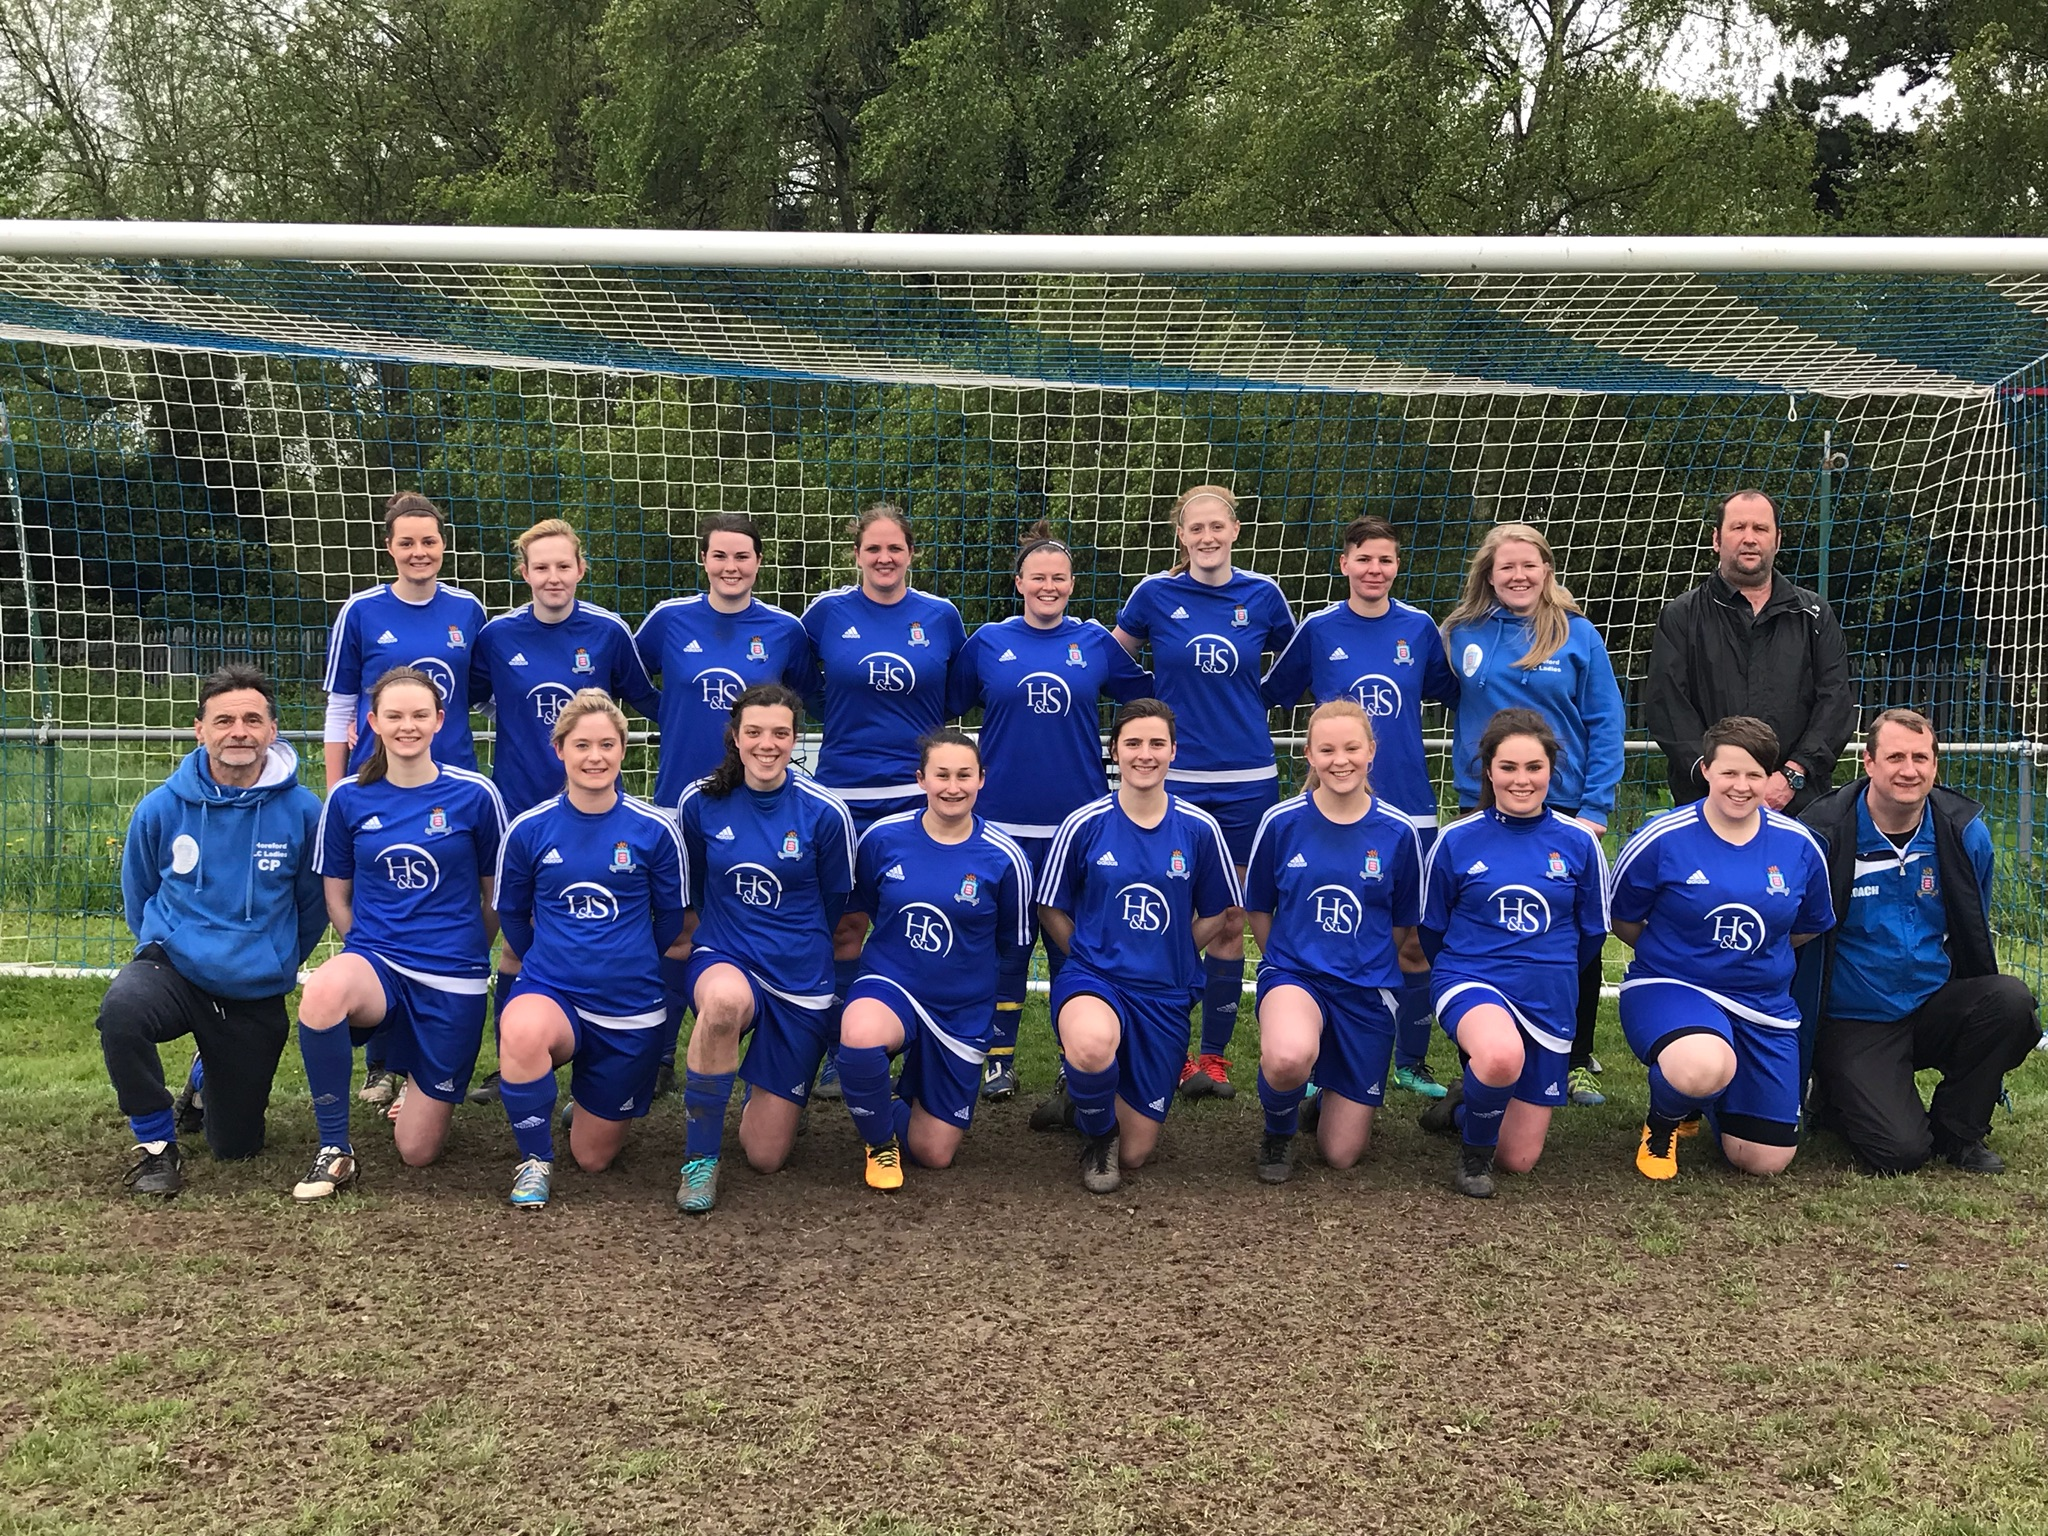 Match Report: 29/04/18  Hereford LC Ladies v Wyre Forest Ladies